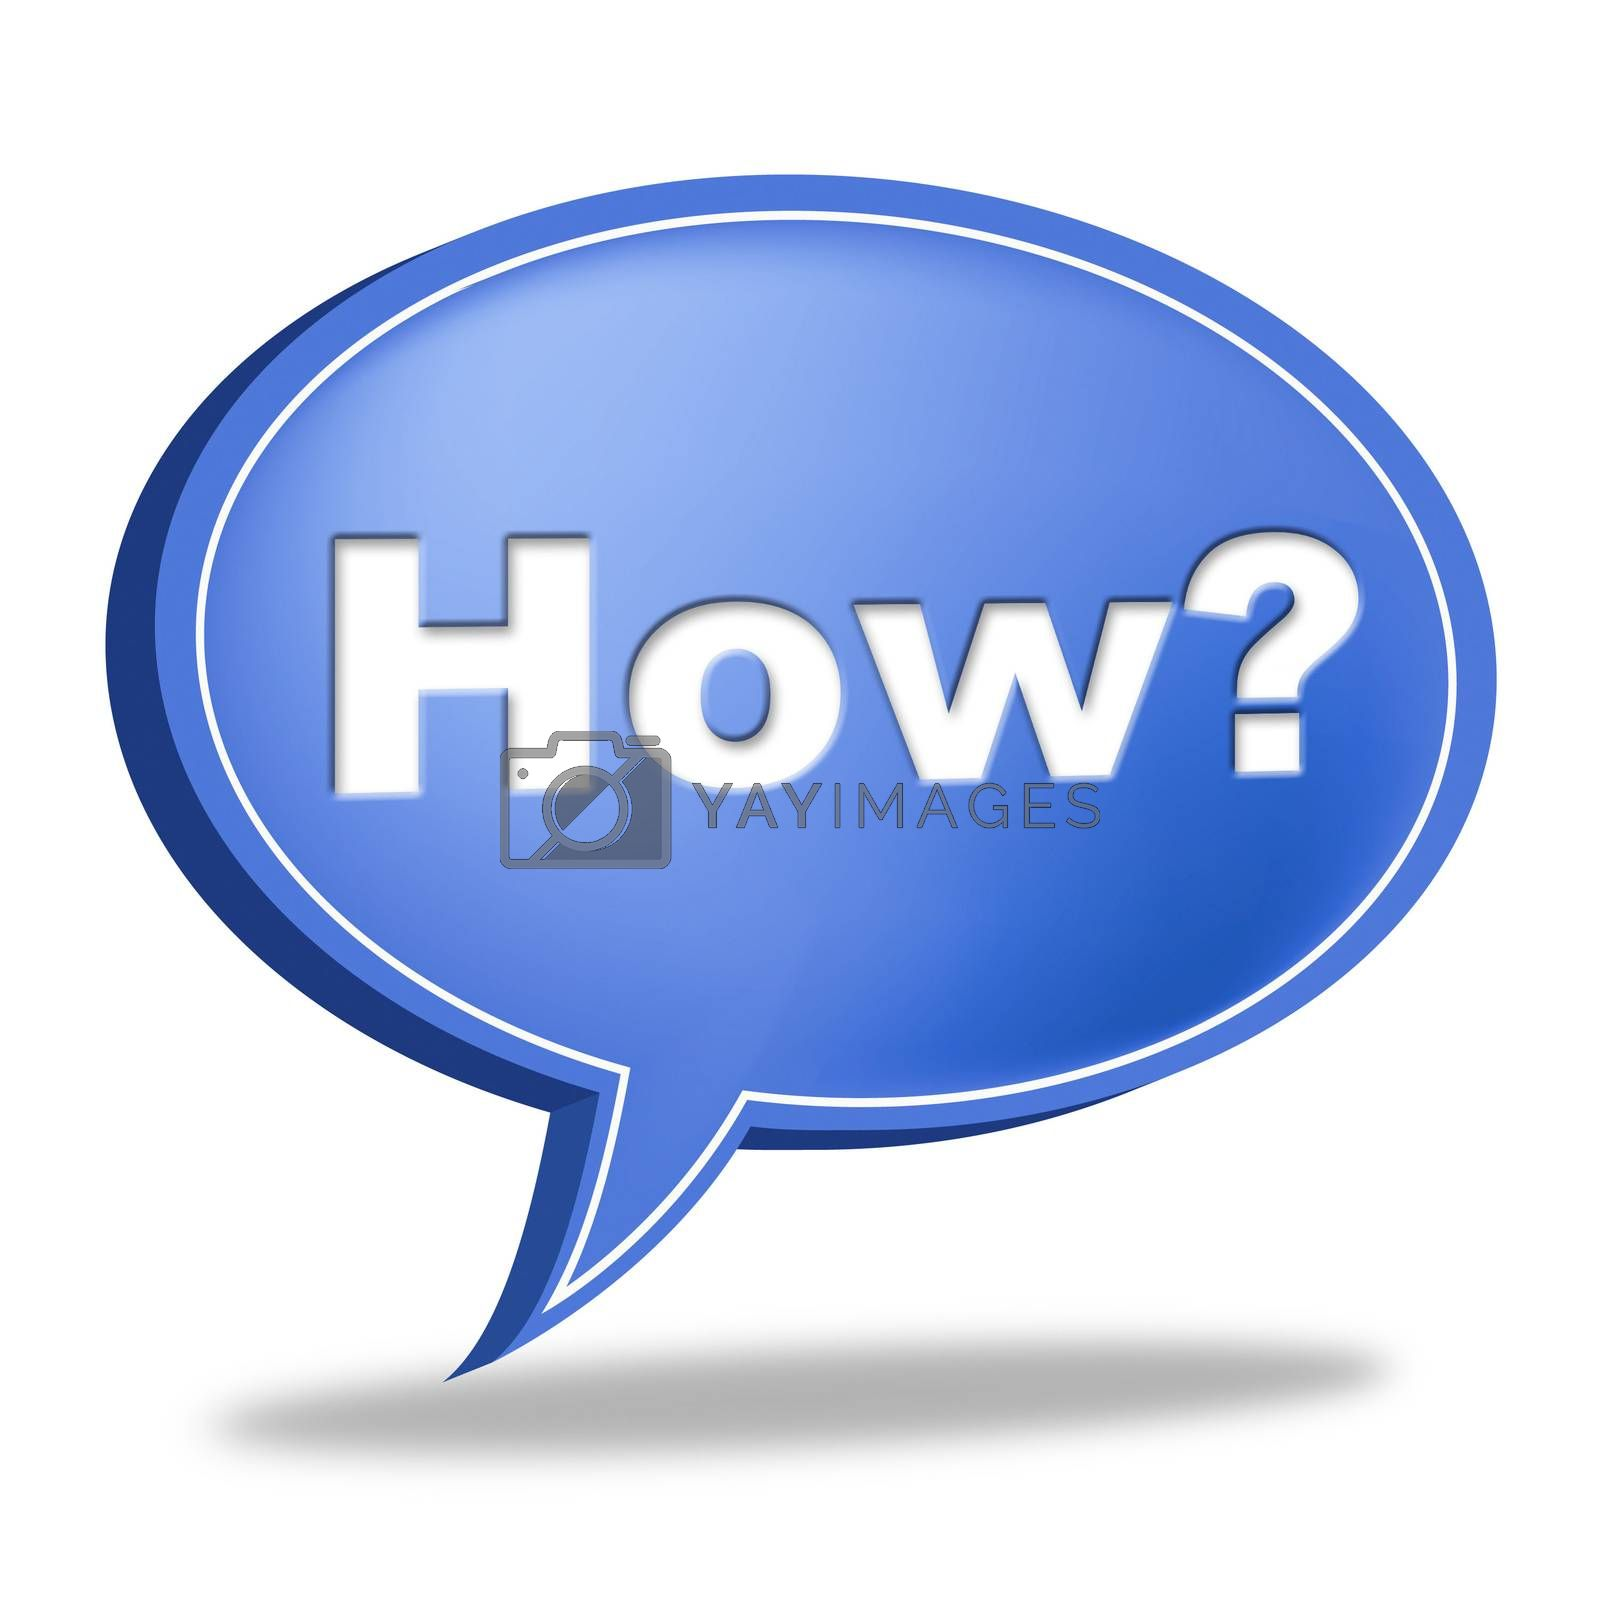 How Question Shows Frequently Asked Questions And Answer by stuartmiles